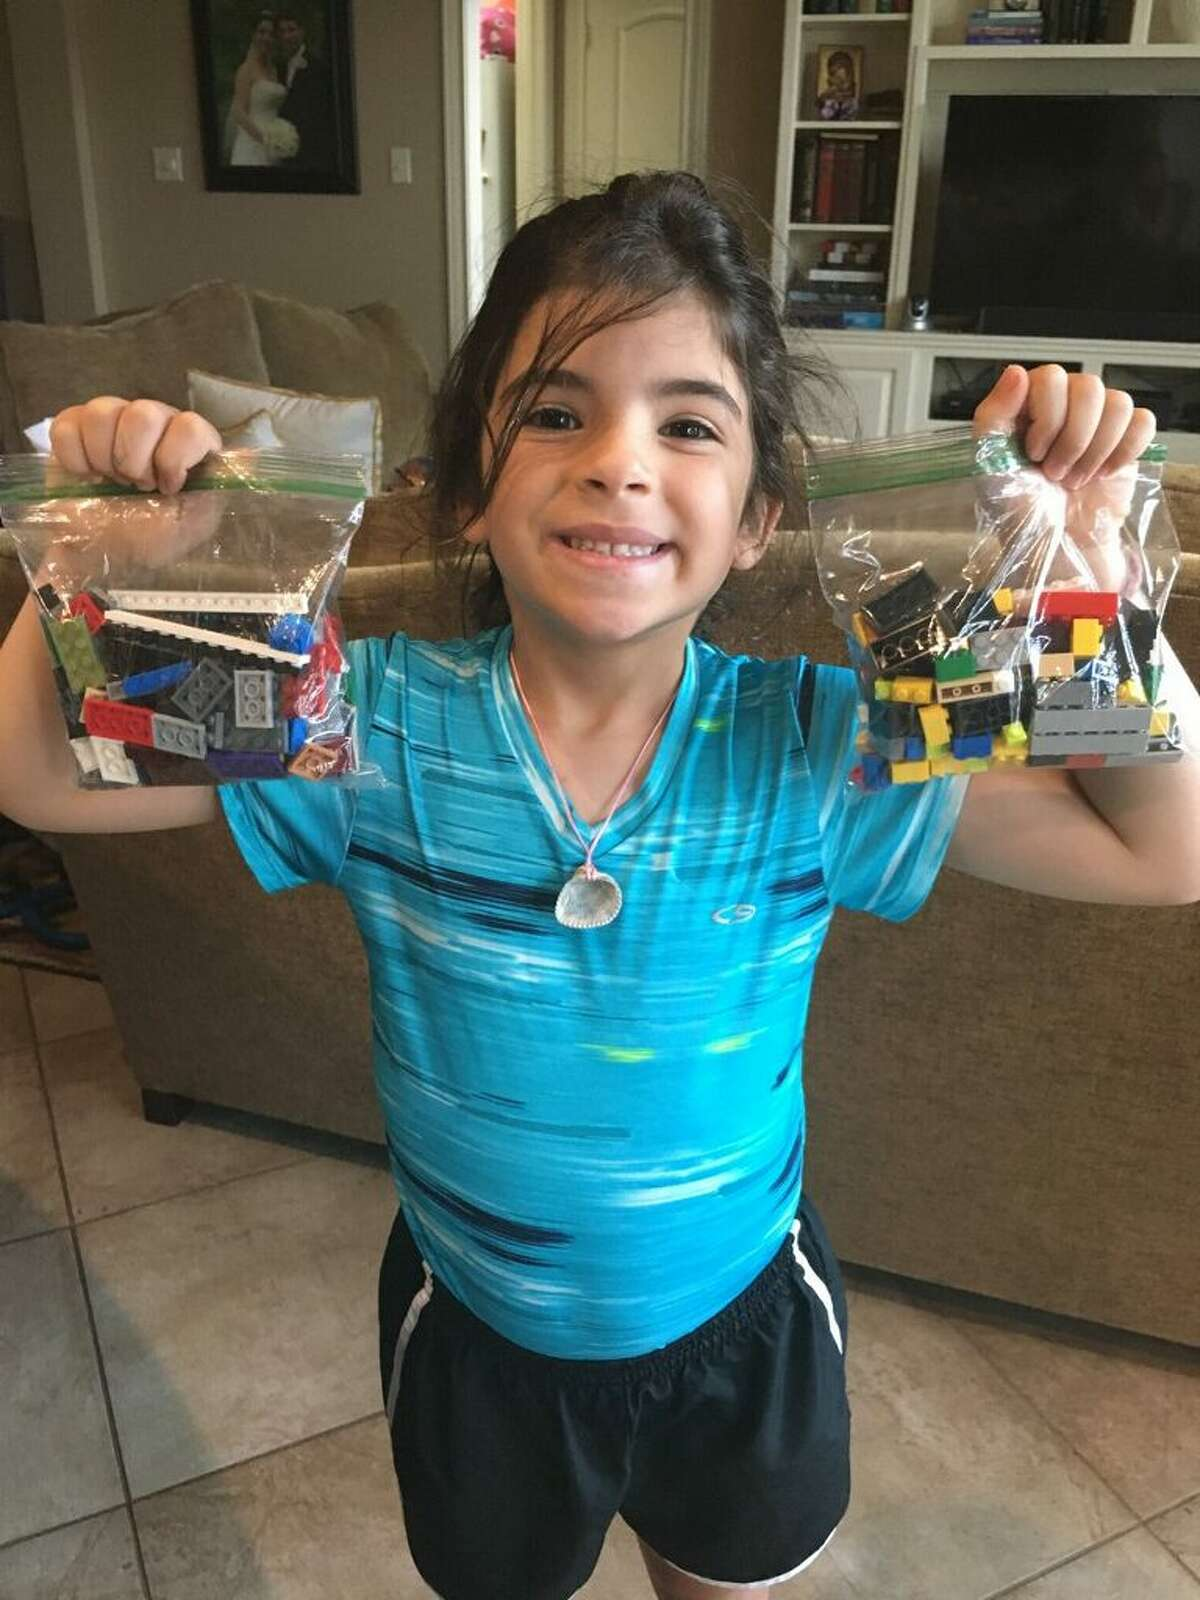 Rachelle Khalaf and her children's love for Lego blocks inspired the family to come together during the pandemic to build a wheelchair ramp made from Legos for her husband diagnosed with Multiple Sclerosis.